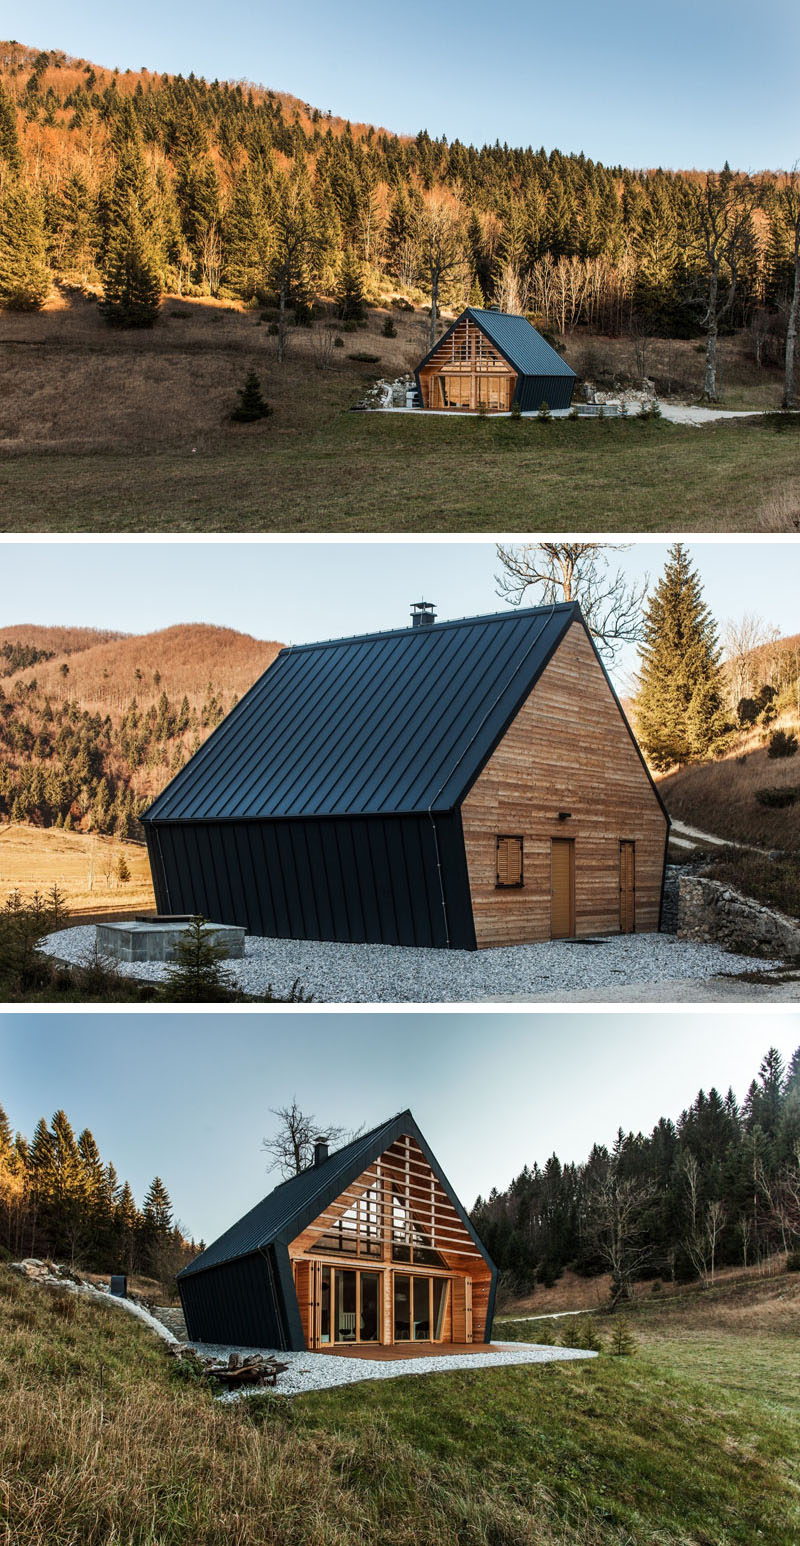 modern-black-and-wood-cabin-300417-1251-01